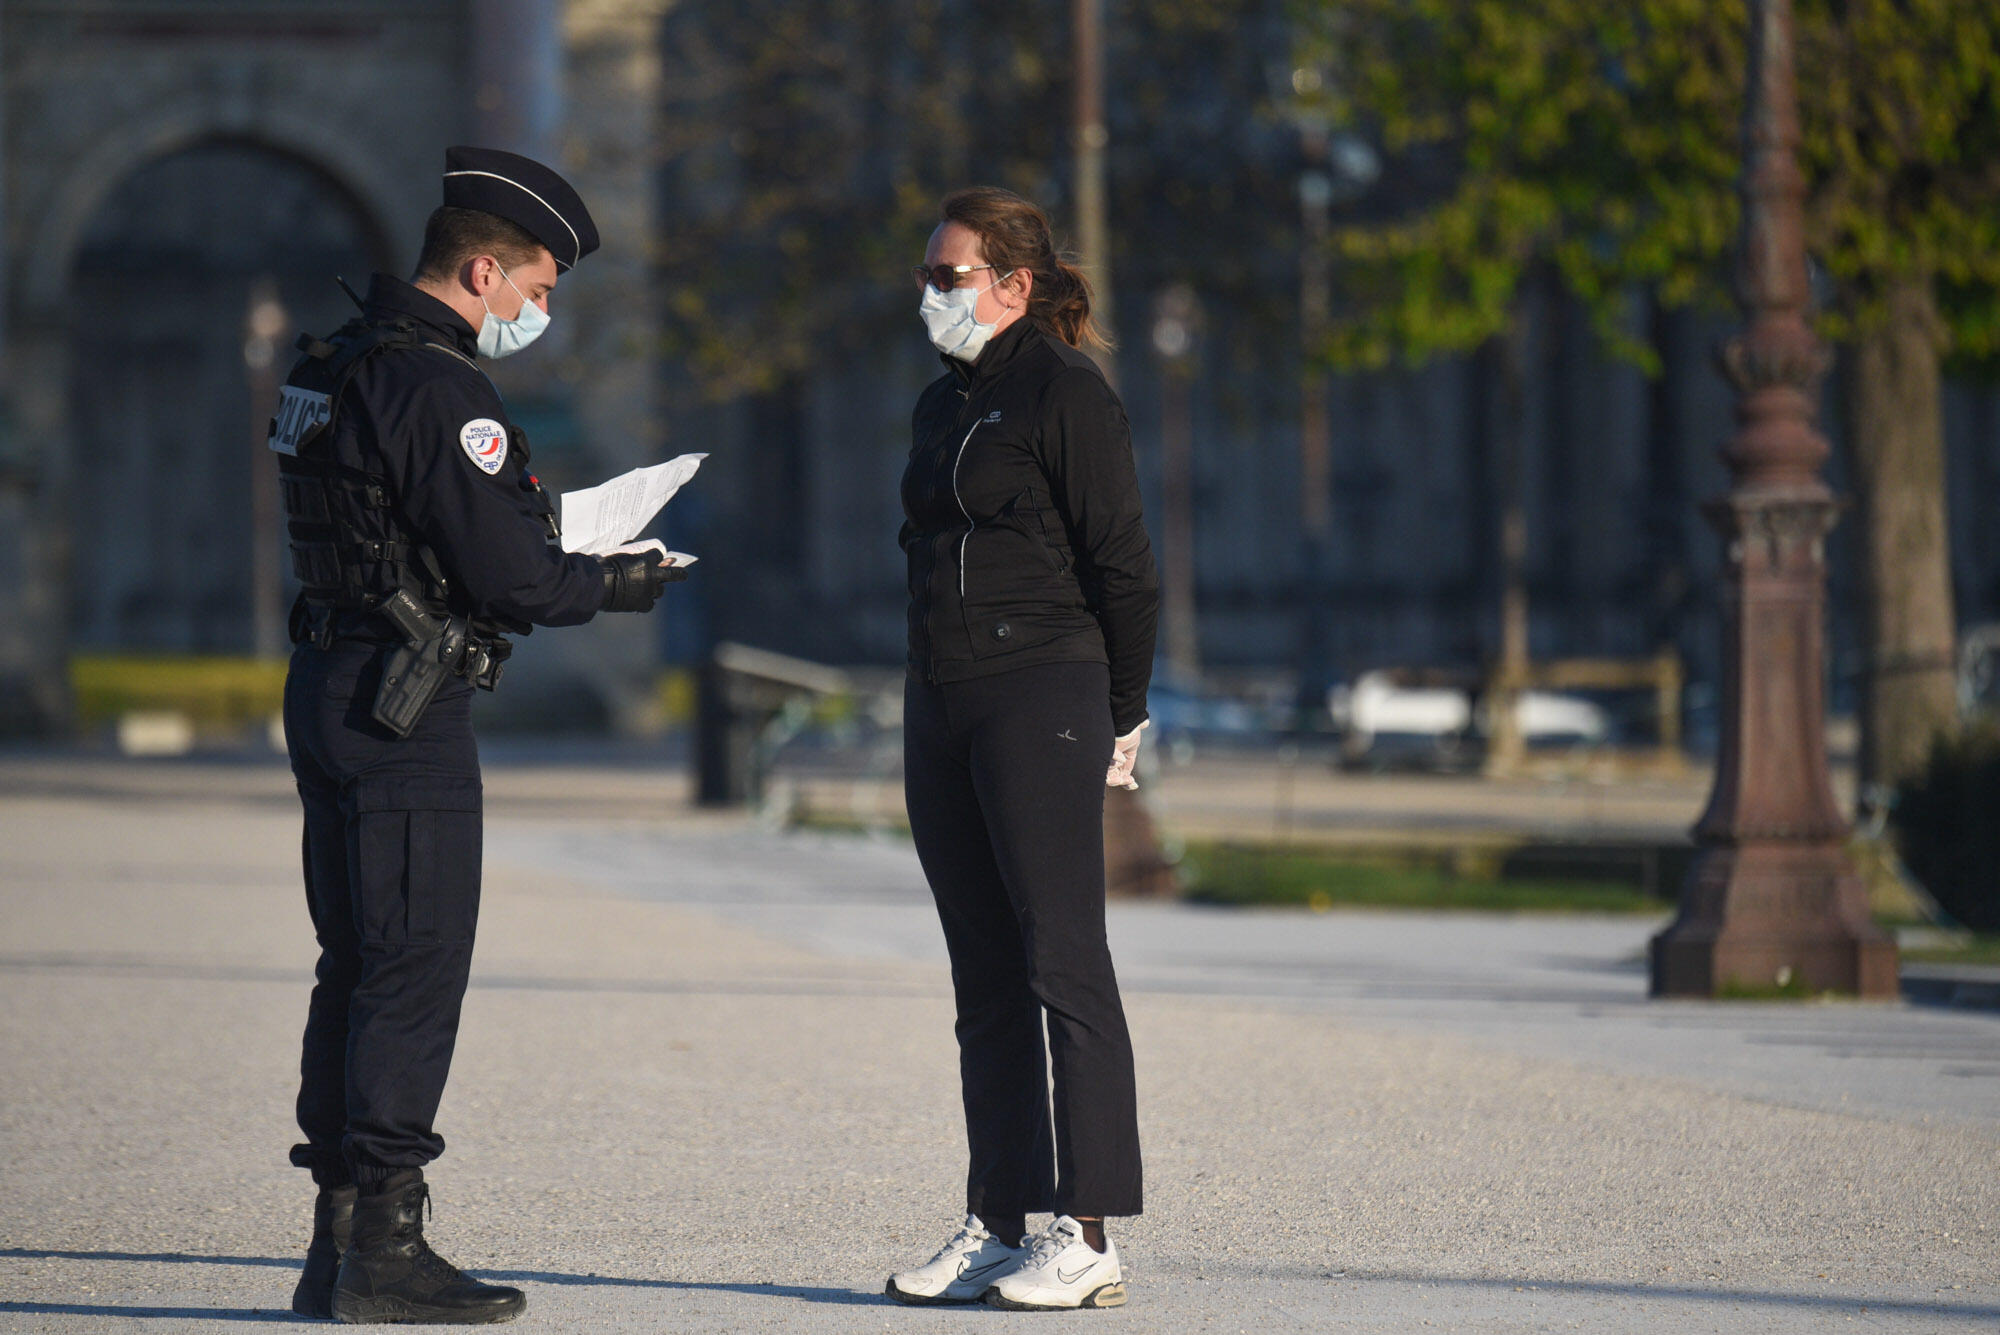 A police officer checks the permission form of a jogger near the Louvre; both wear protective masks. France's scientific council has said the lockdown is currently the only efficient strategy for minimising the spread of the virus. Many expect it to be extended beyond April 15.